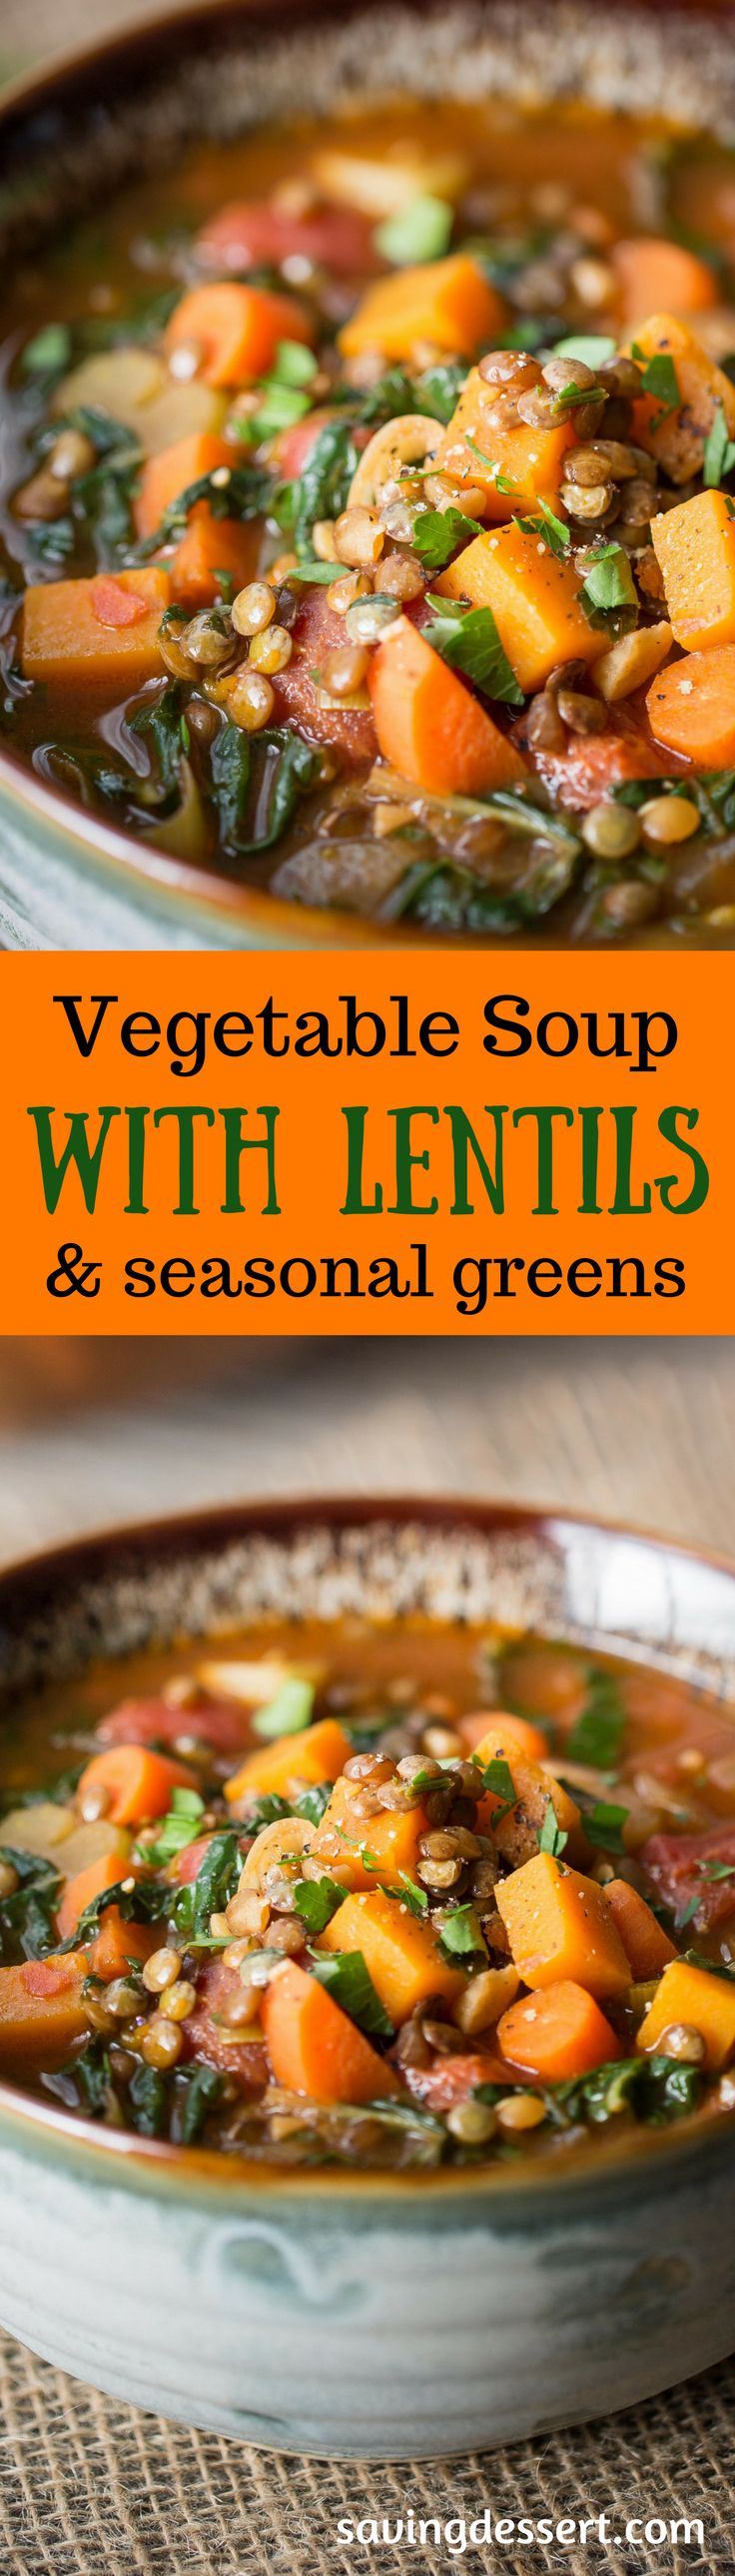 Vegetable Soup with Lentils & Seasonal Greens - A hearty rustic soup w/vegetables simmered in a rich flavorful broth with wilted seasonal greens & lentils www.savingdessert.com (Quinoa Soup Recipes)